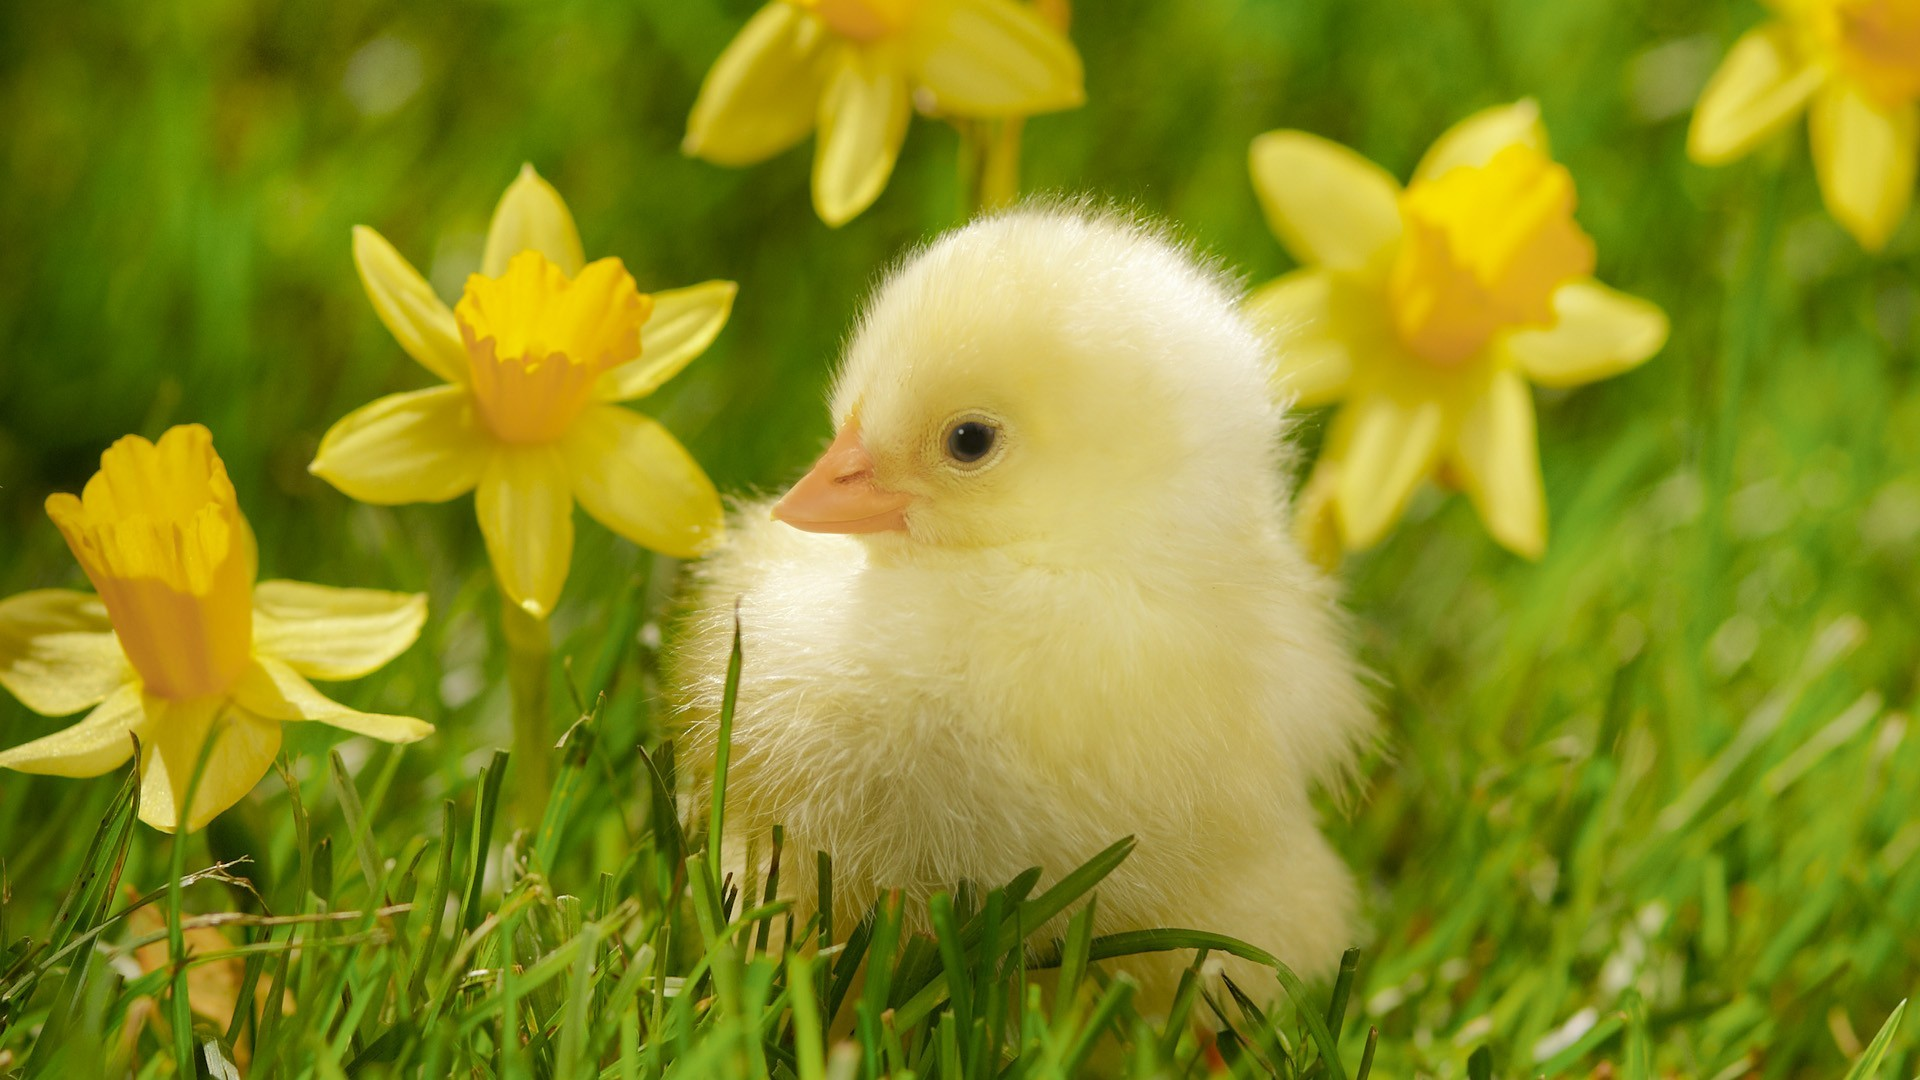 Res: 1920x1080, Birds grass spring chickens daffodils yellow flowers wallpaper